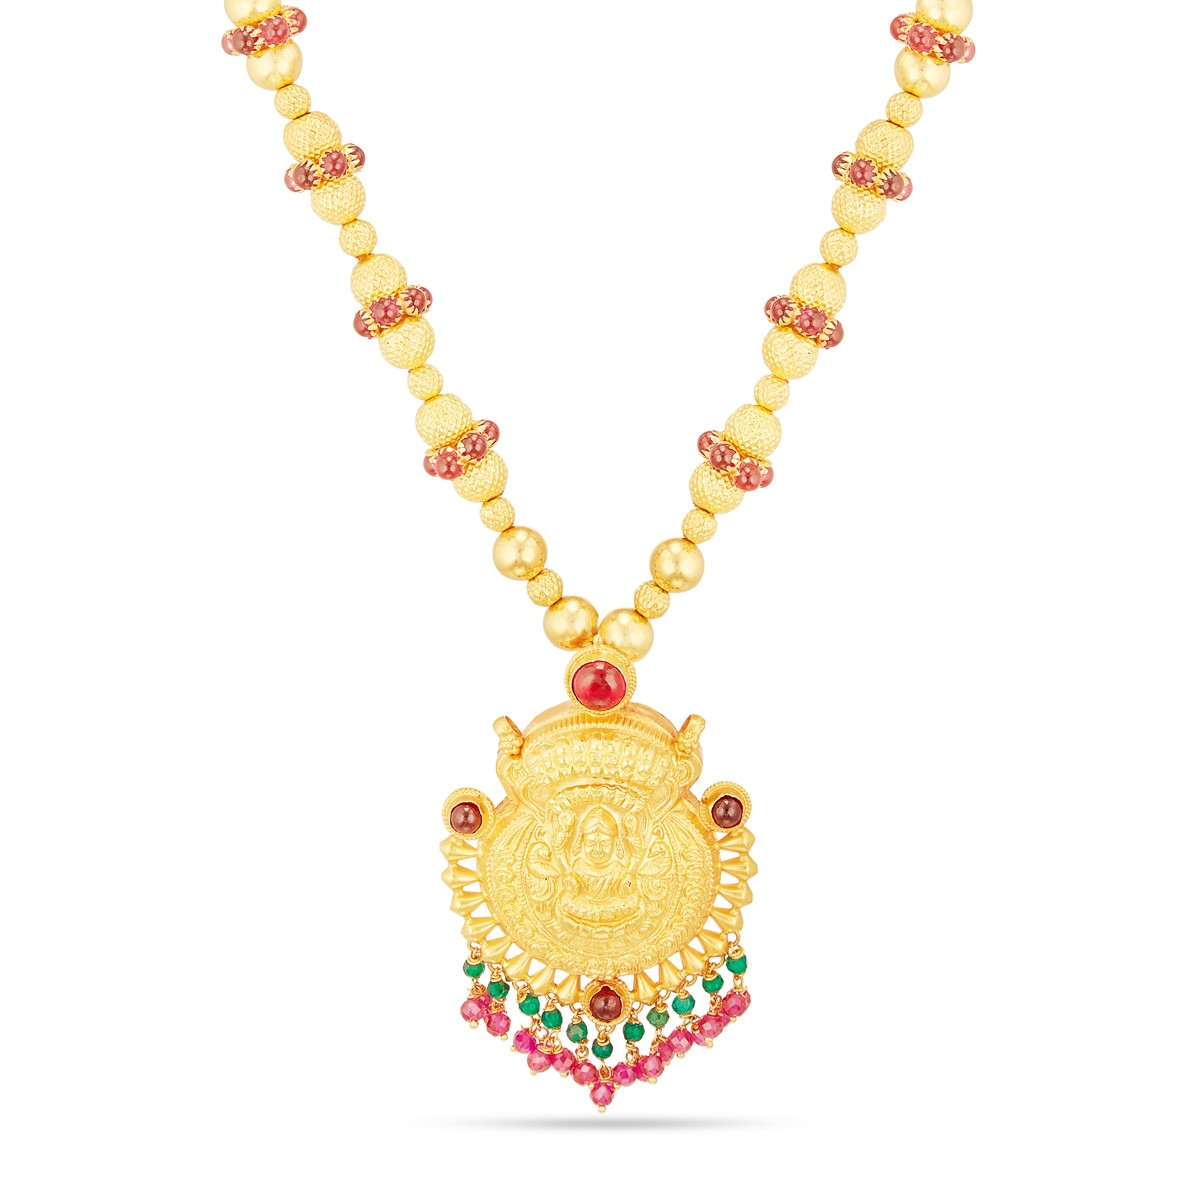 Gold Necklace Designs ~ Page 24 of 101 ~ South India Jewels